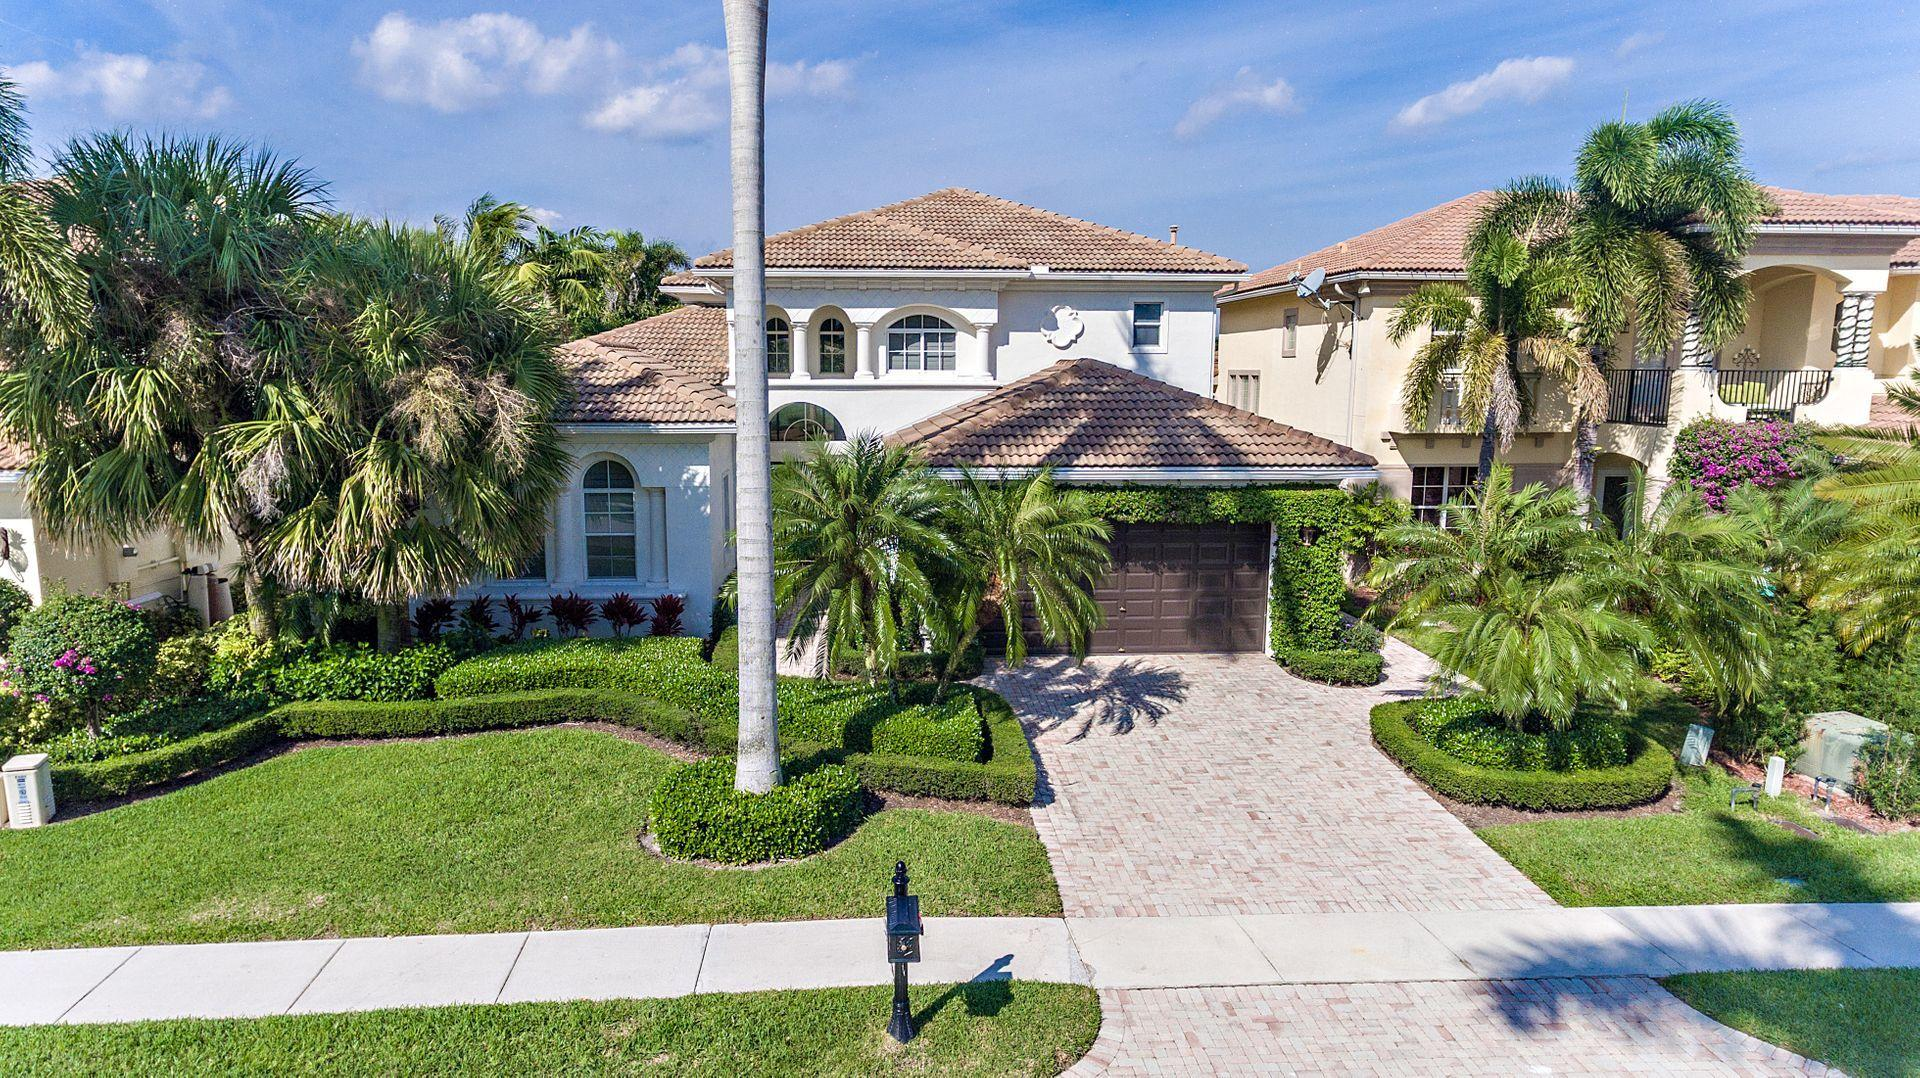 507 Les Jardin Drive, Palm Beach Gardens, Florida 33410, 4 Bedrooms Bedrooms, ,5 BathroomsBathrooms,A,Single family,Les Jardin,RX-10484339